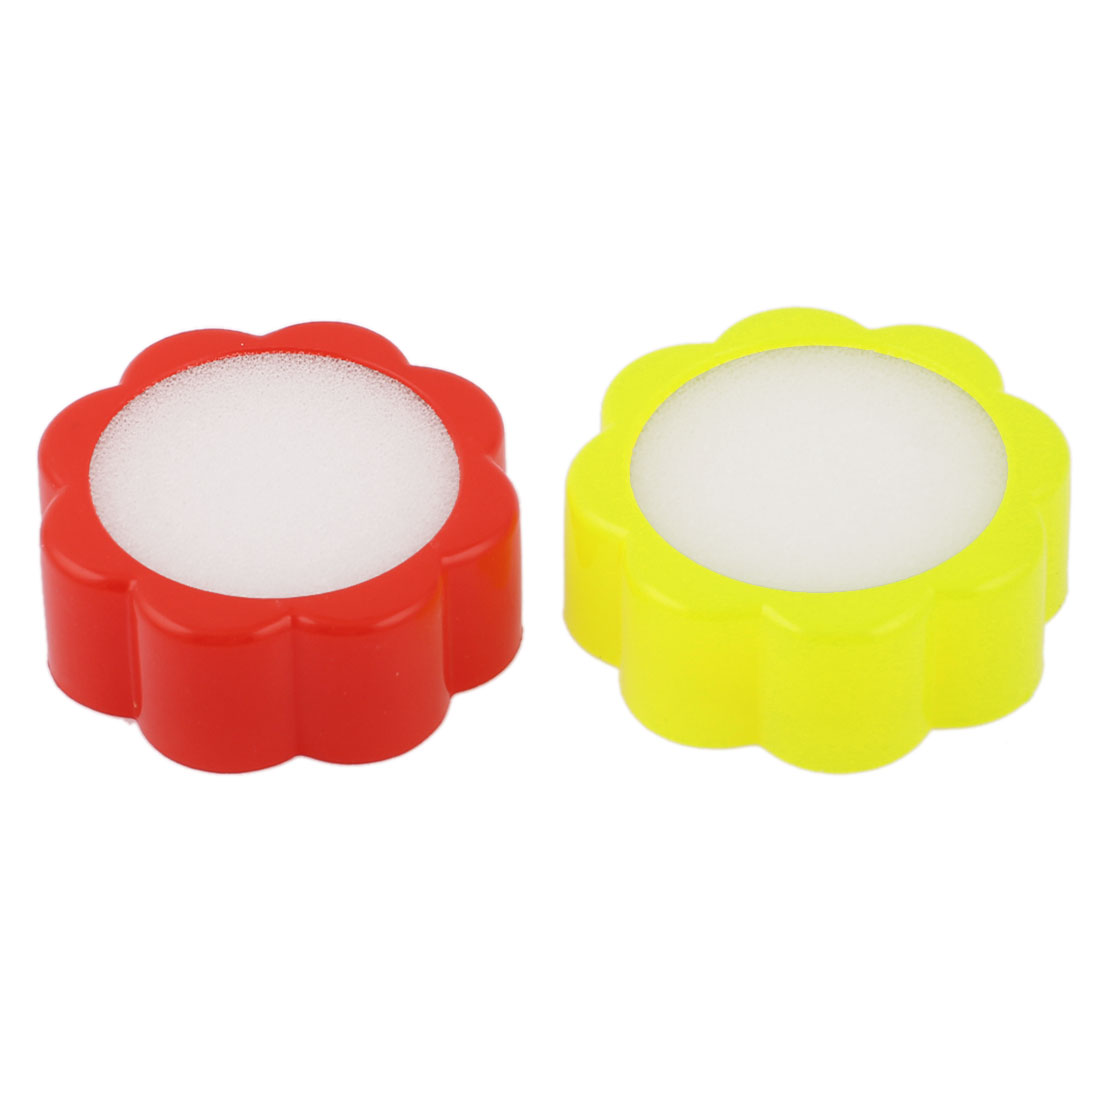 2pcs Flower Shaped Red Yellow Plastic Case White Finger Wet Sponge for Money Casher